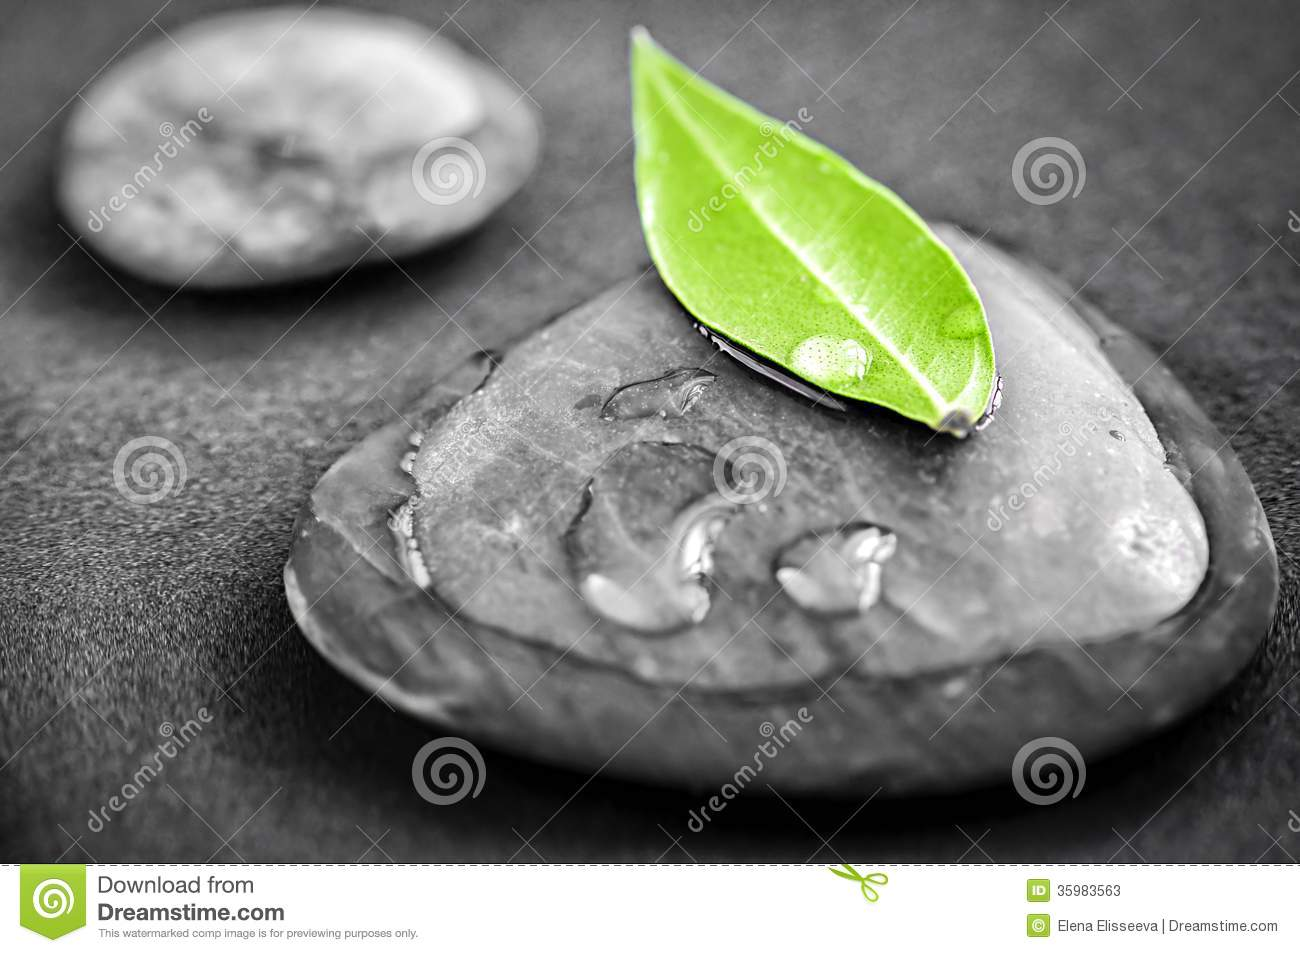 Black and white zen stones submerged in water with color accented green leaf